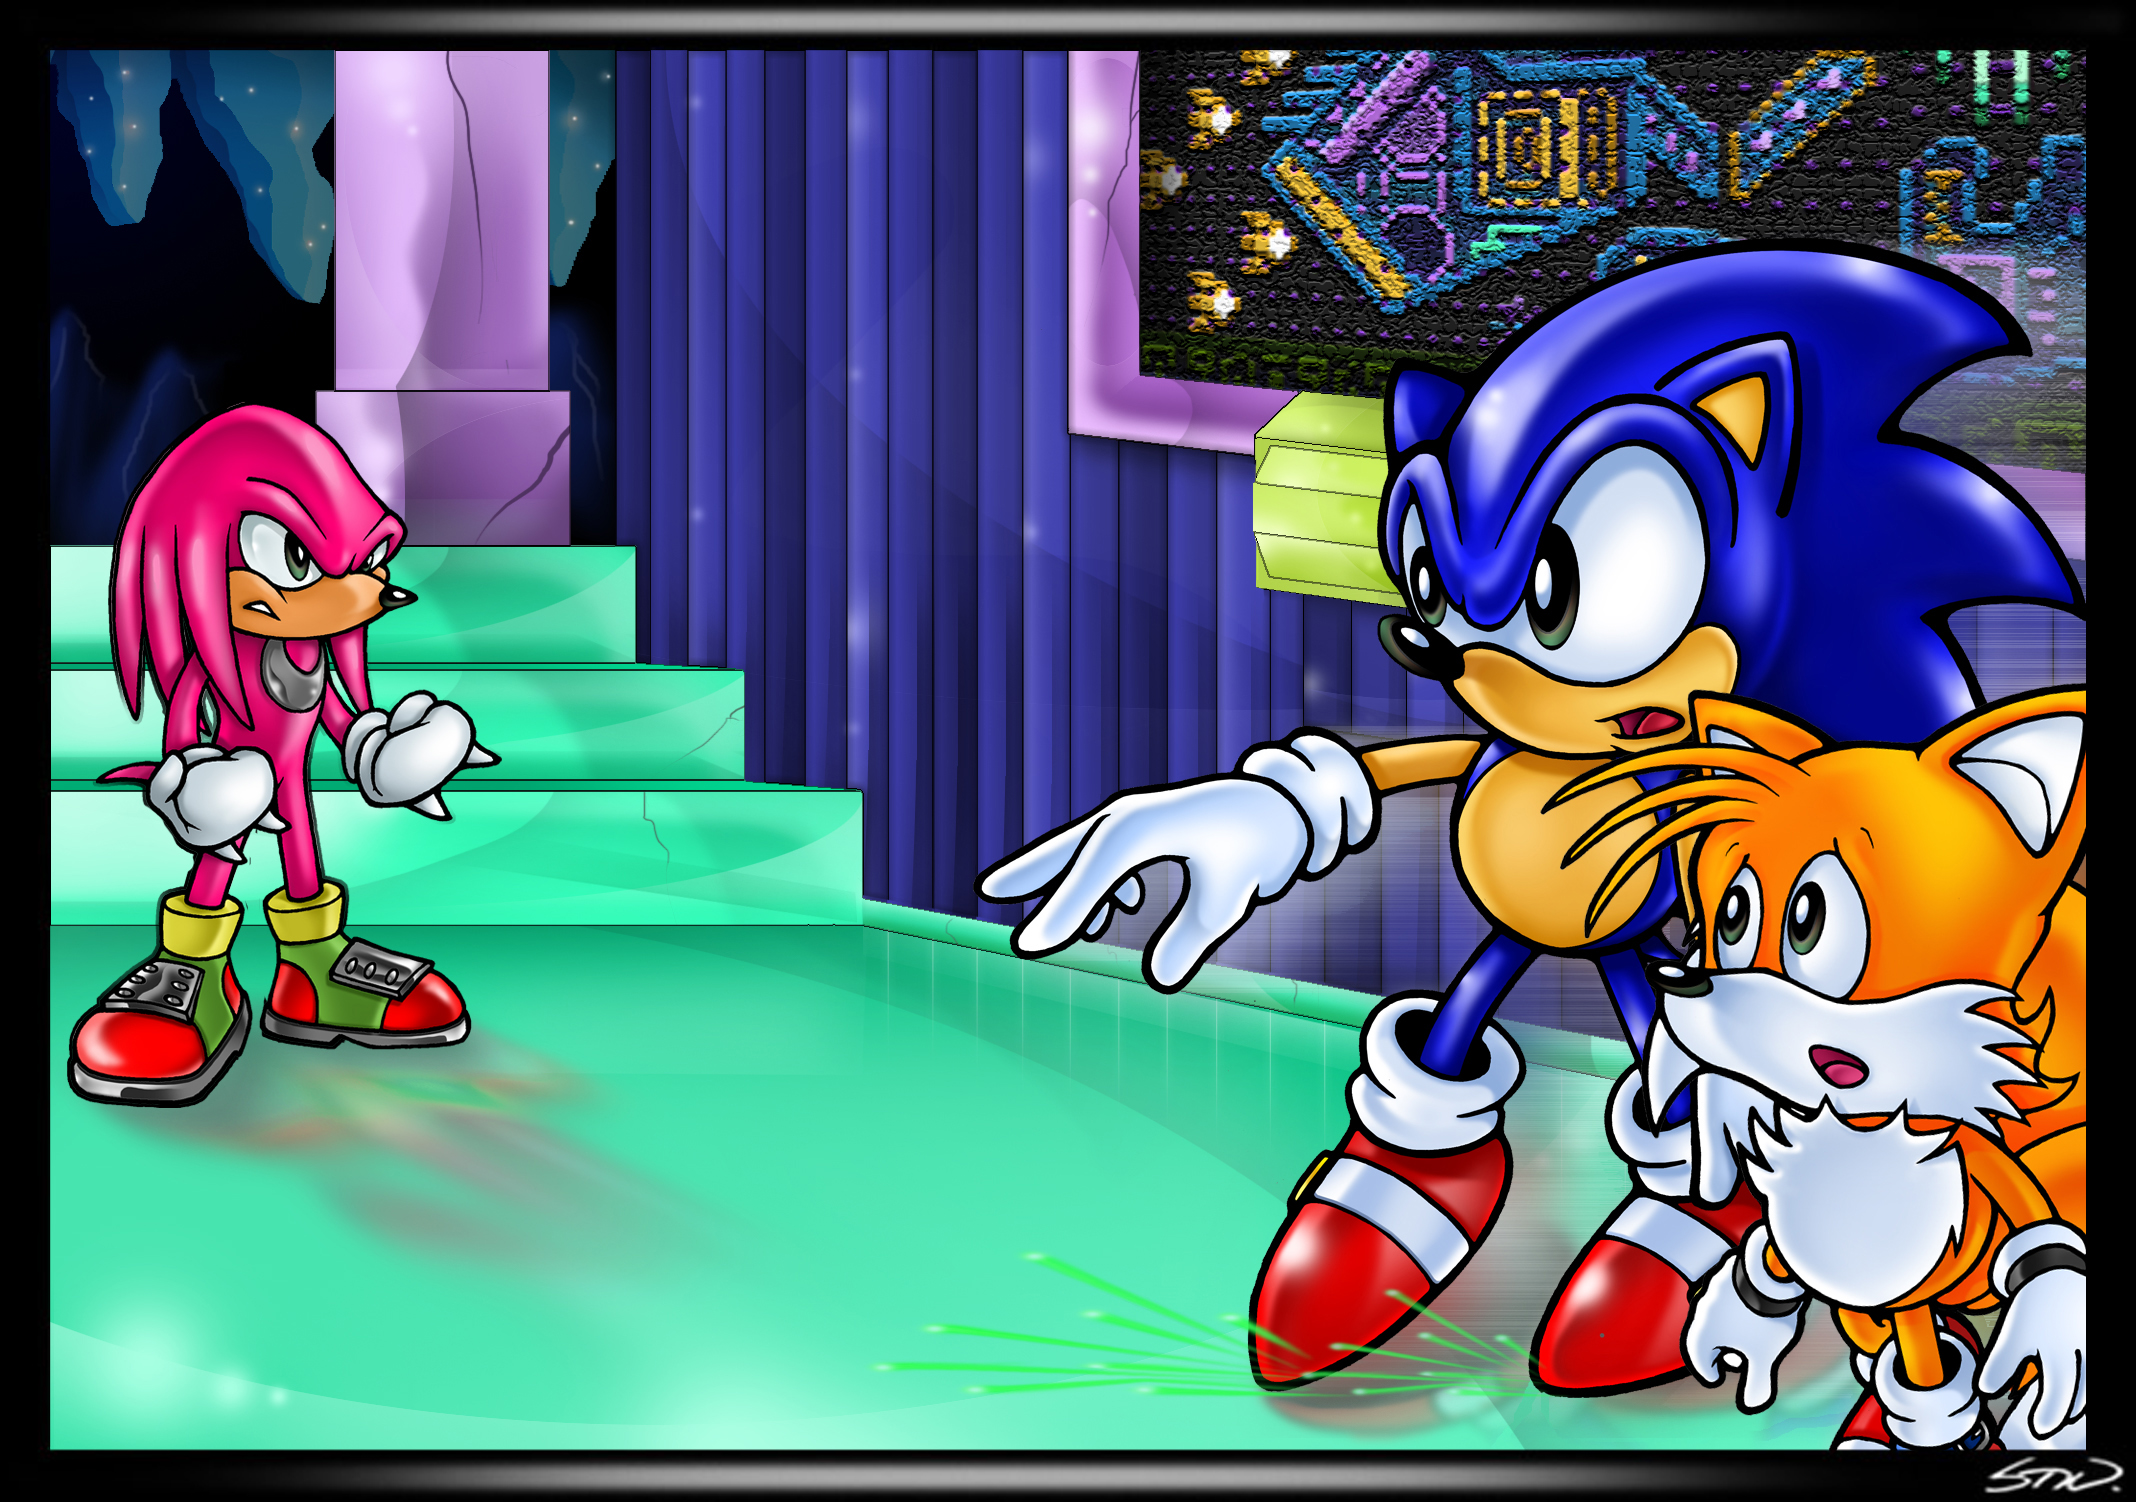 Sonic And Tails Vs Knuckles In Hidden Palace Sonic The Hedgehog Know Your Meme